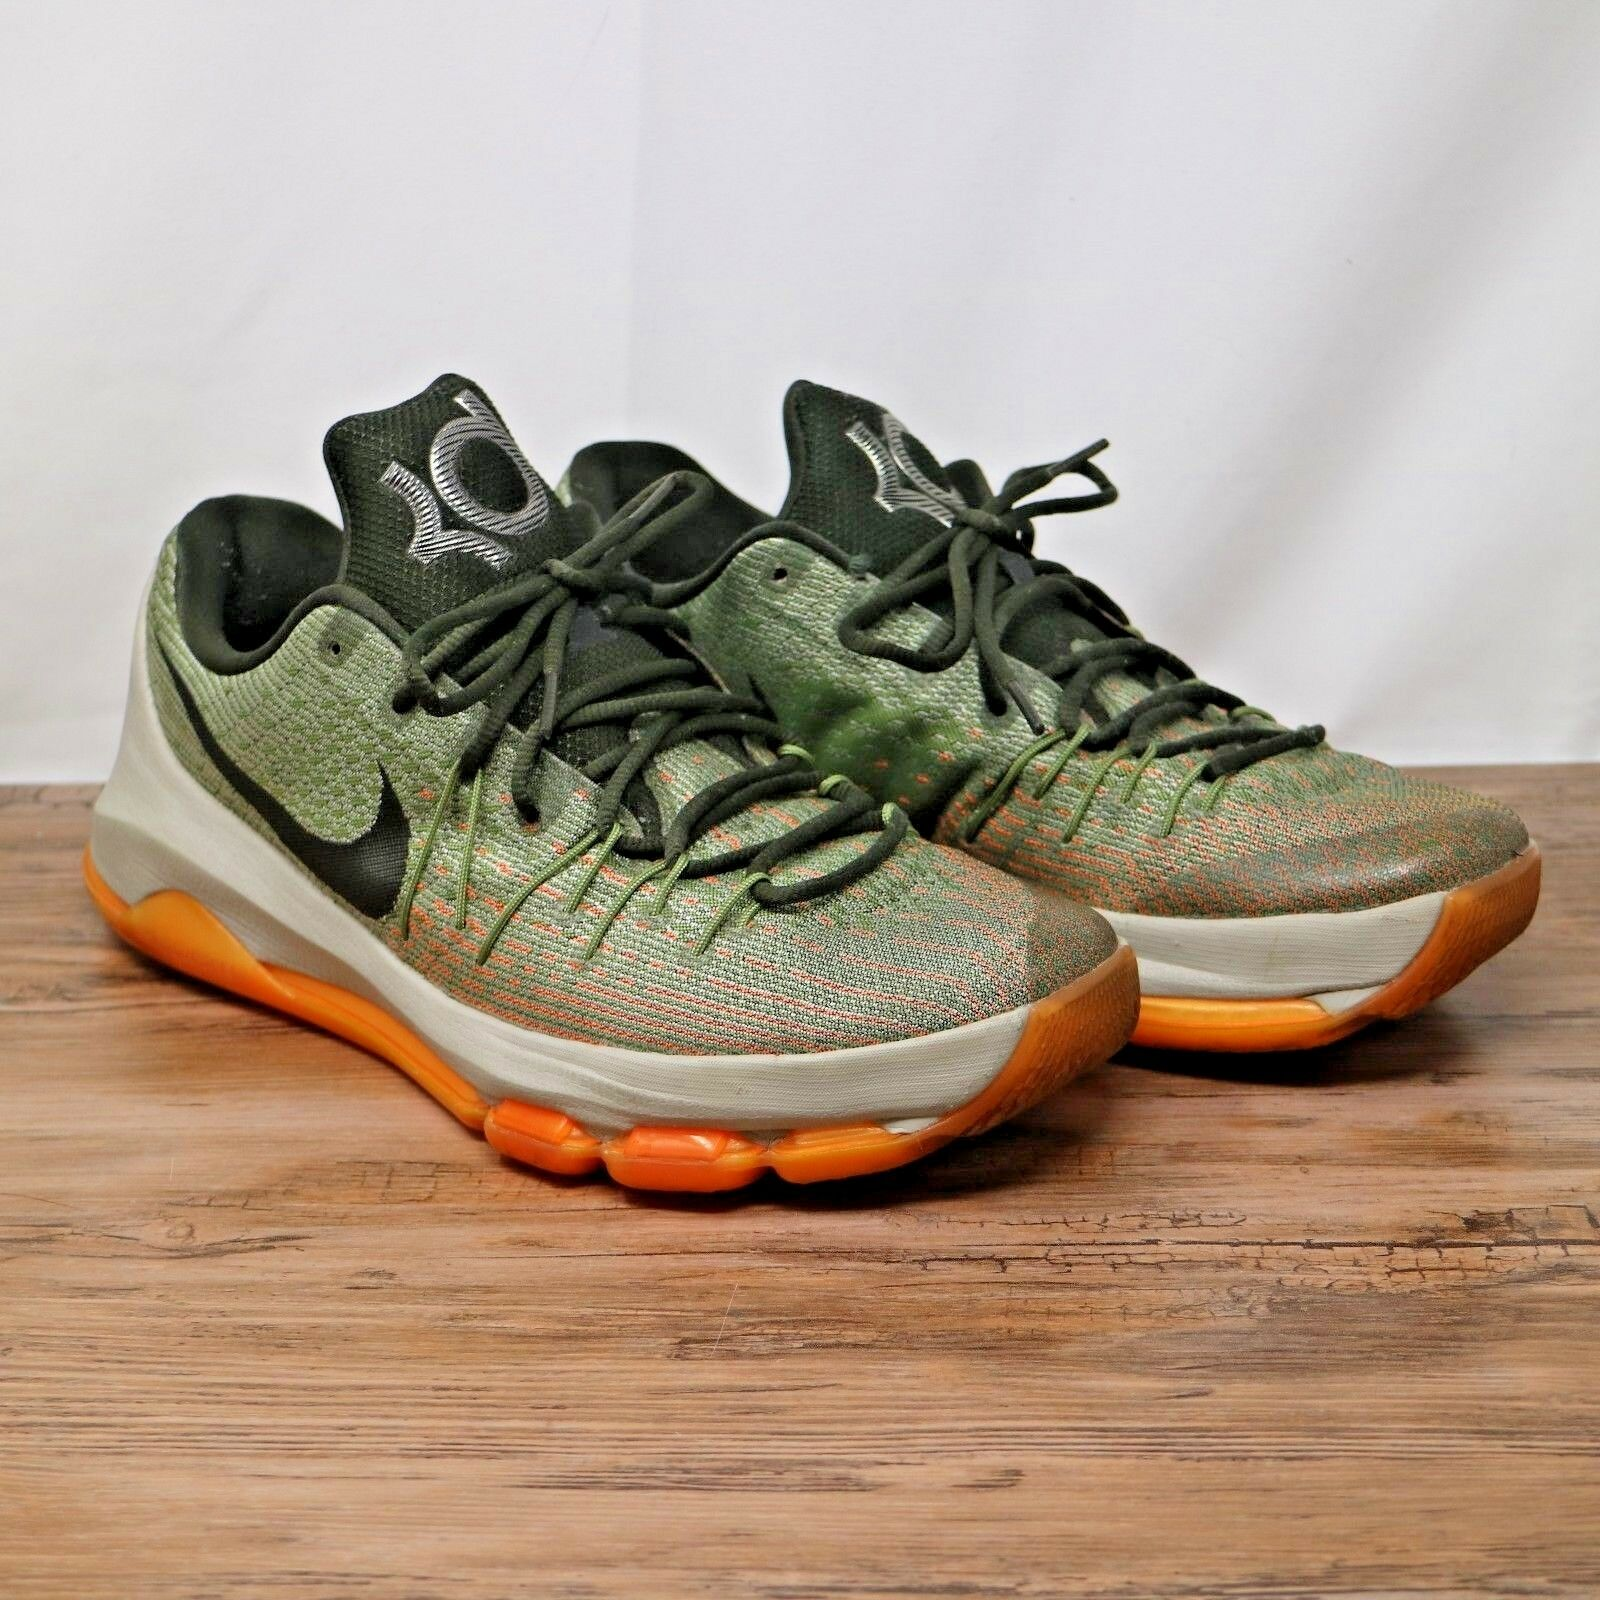 nike   kd 8 facile euro gris / sz sequoia alligator baskets lunaire 749375-033 sz / 12 ef9bc9